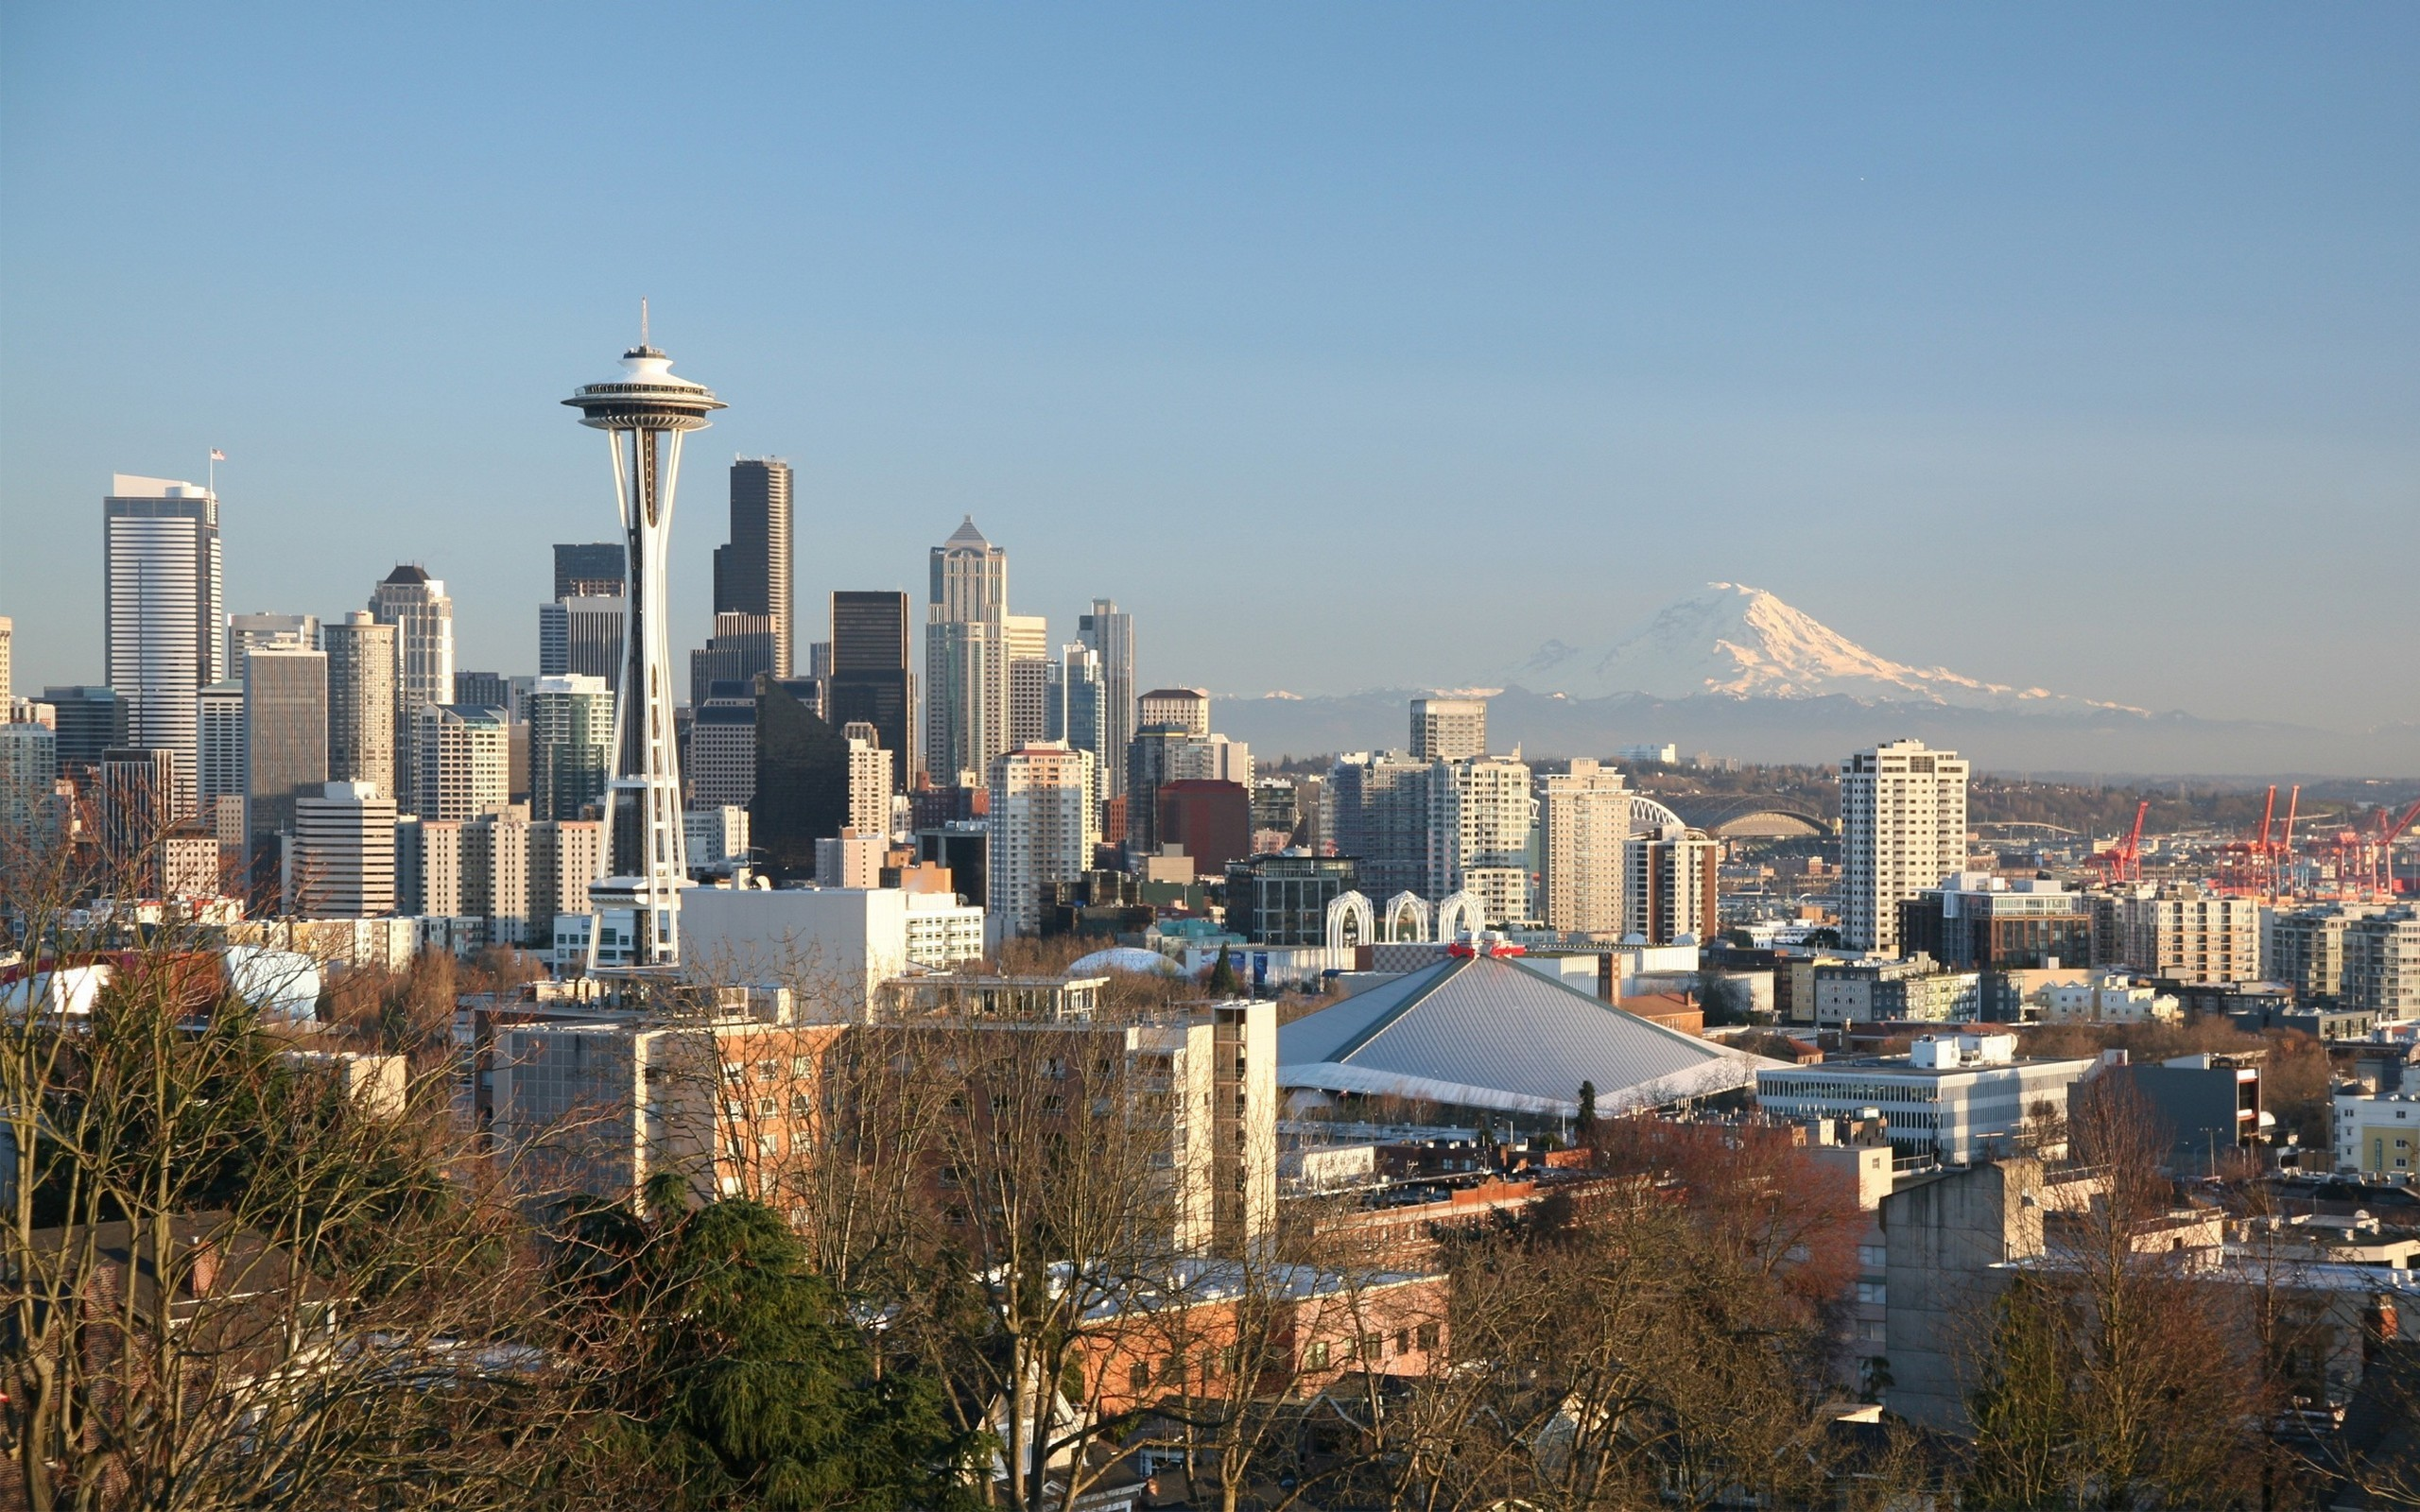 Sea Hd Wallpapers 1080p Seattle Skyline Wallpaper 69 Images